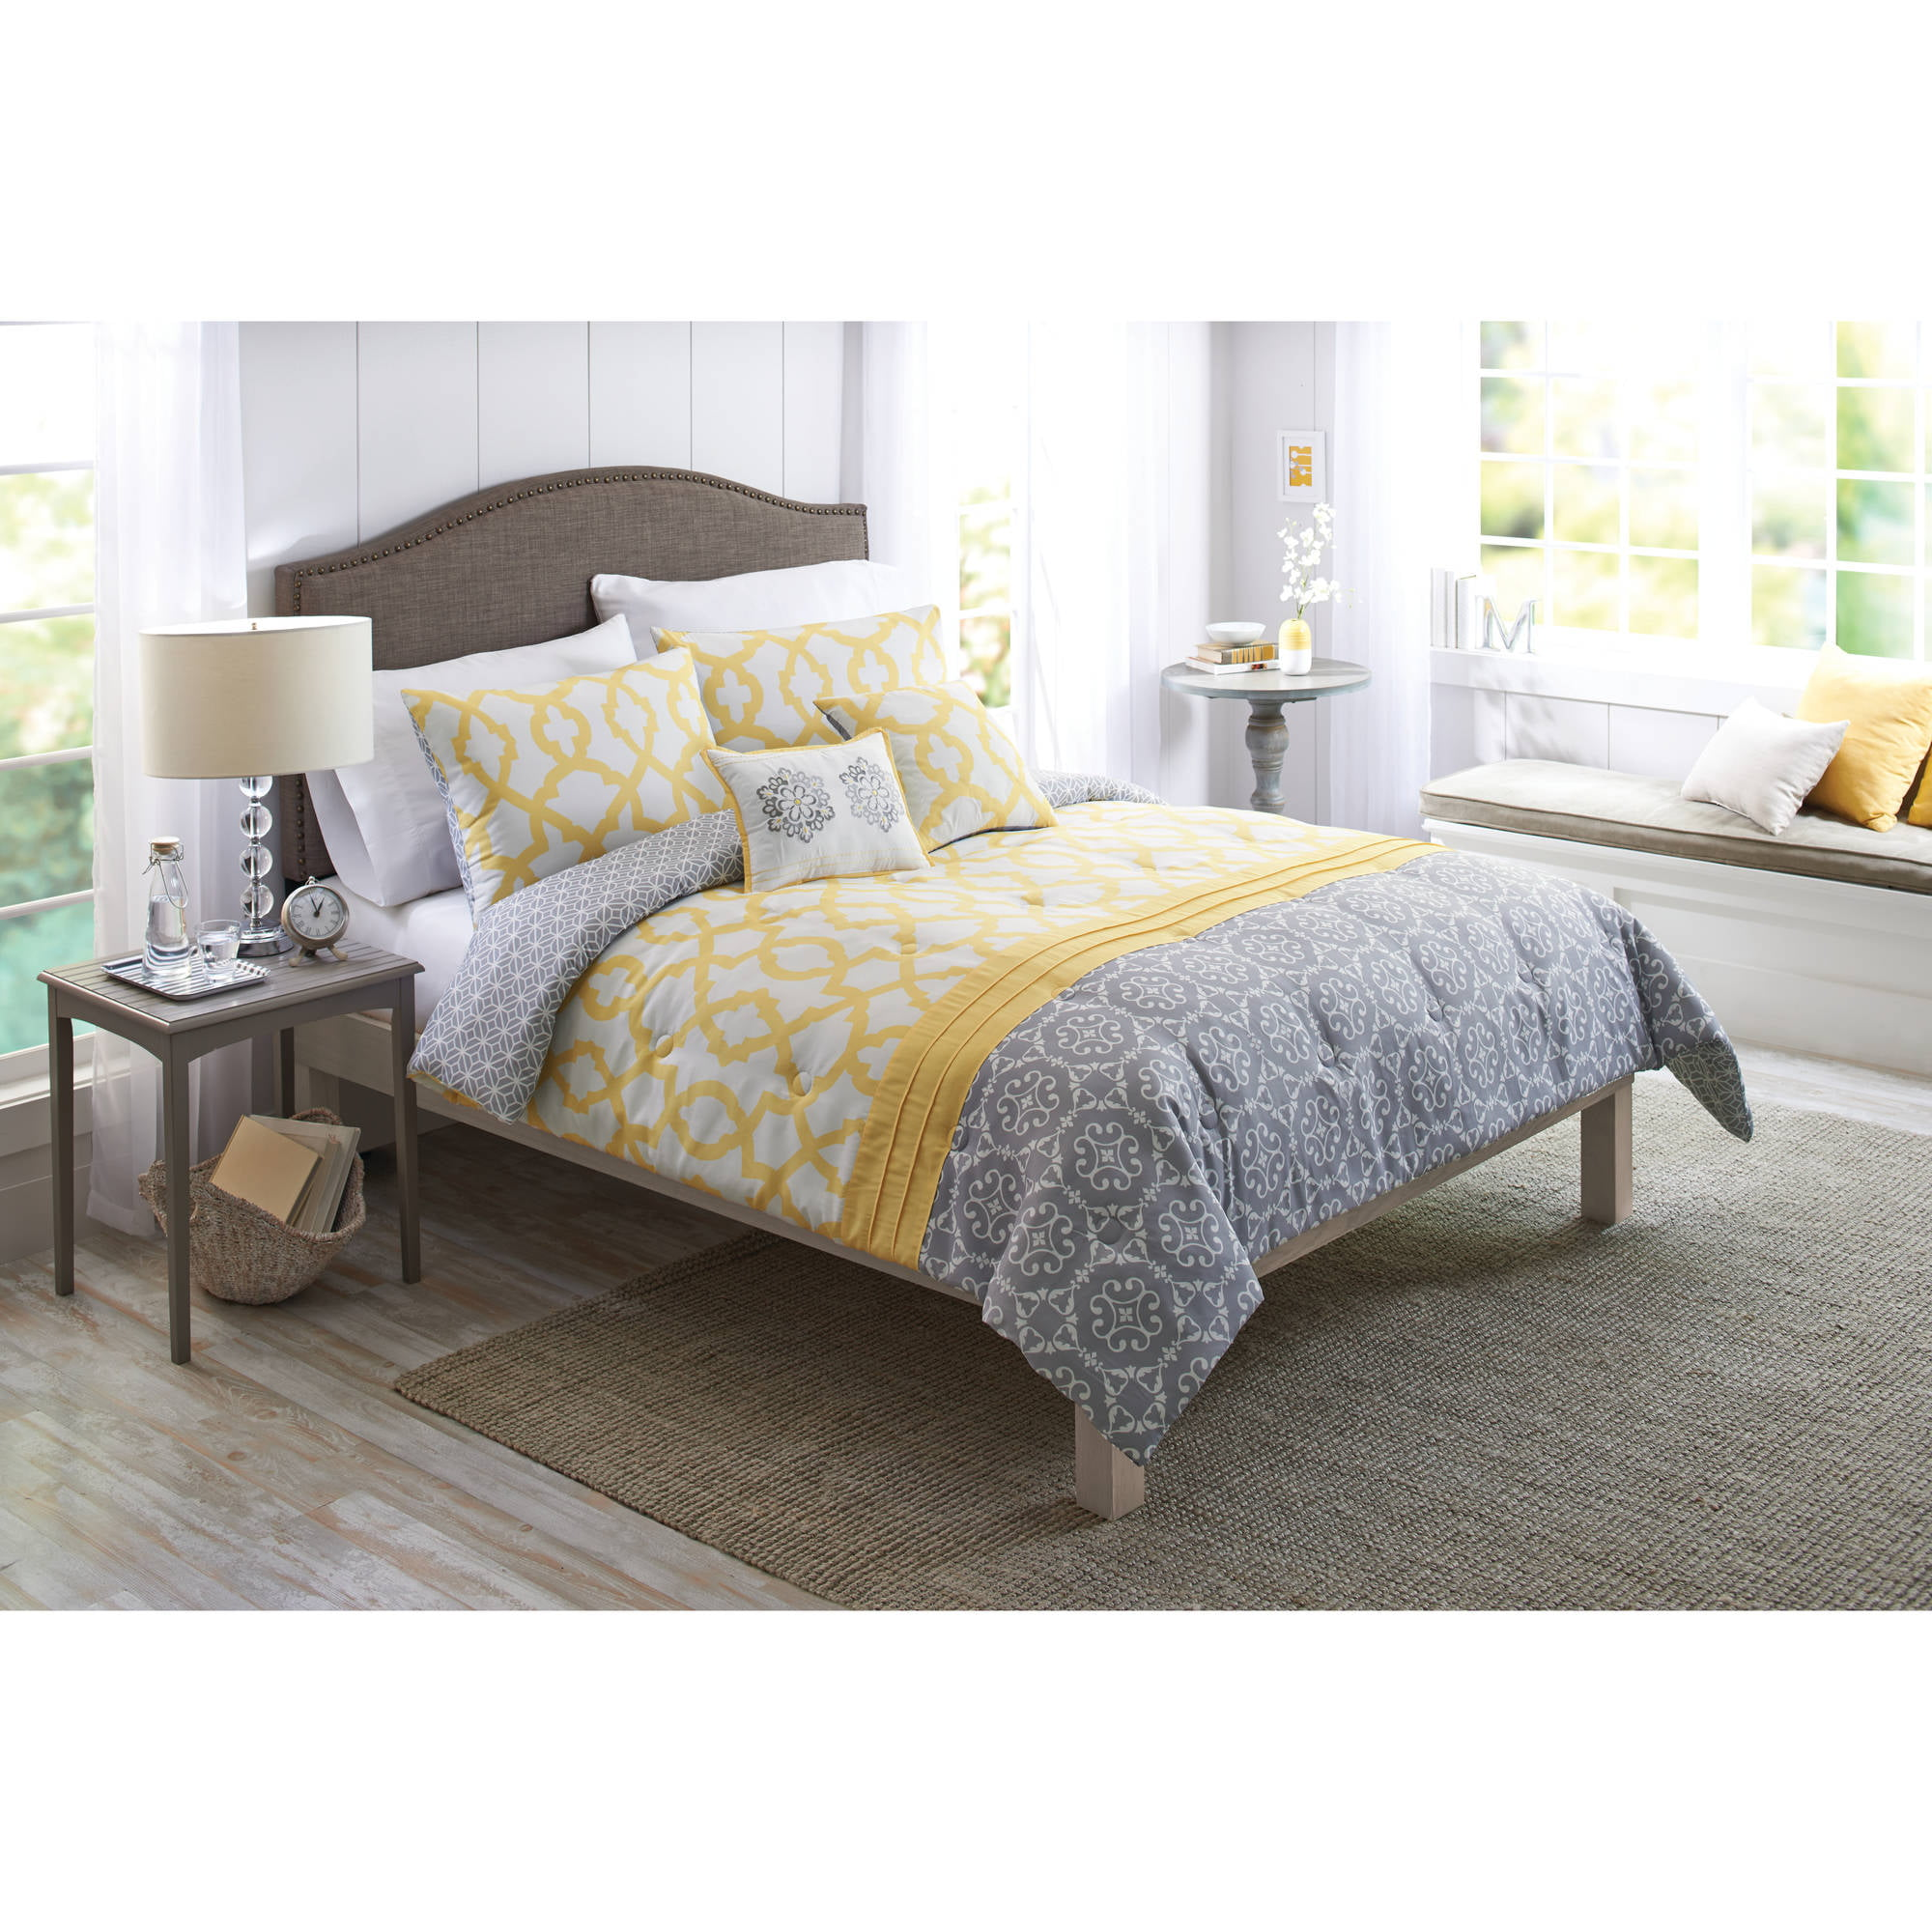 shop comforter basics bath comforters bedding down abc carpet medium a bed at summer home bliss simply